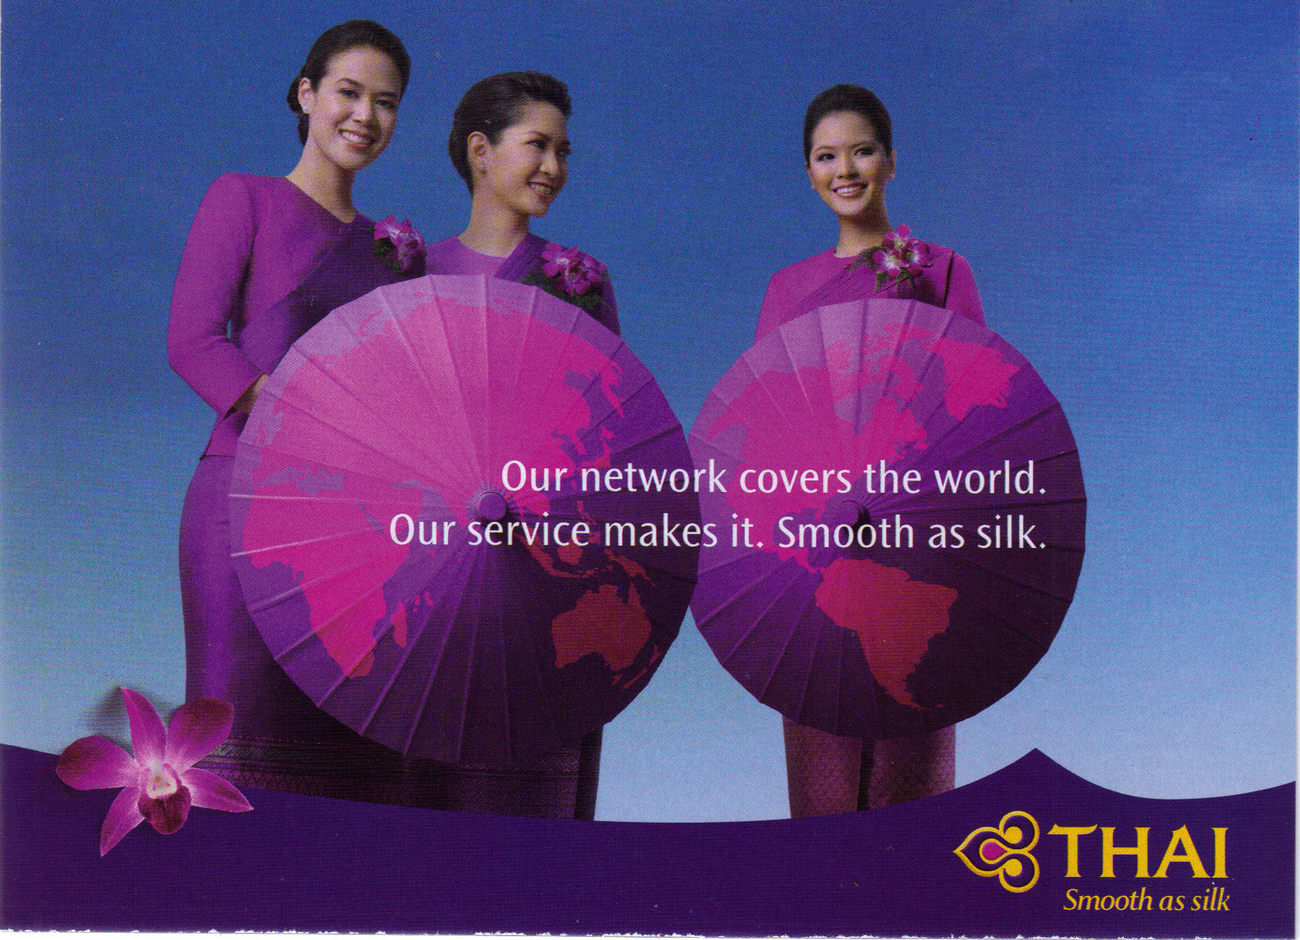 4 Thai Airways Royal Orchid Service Postcards